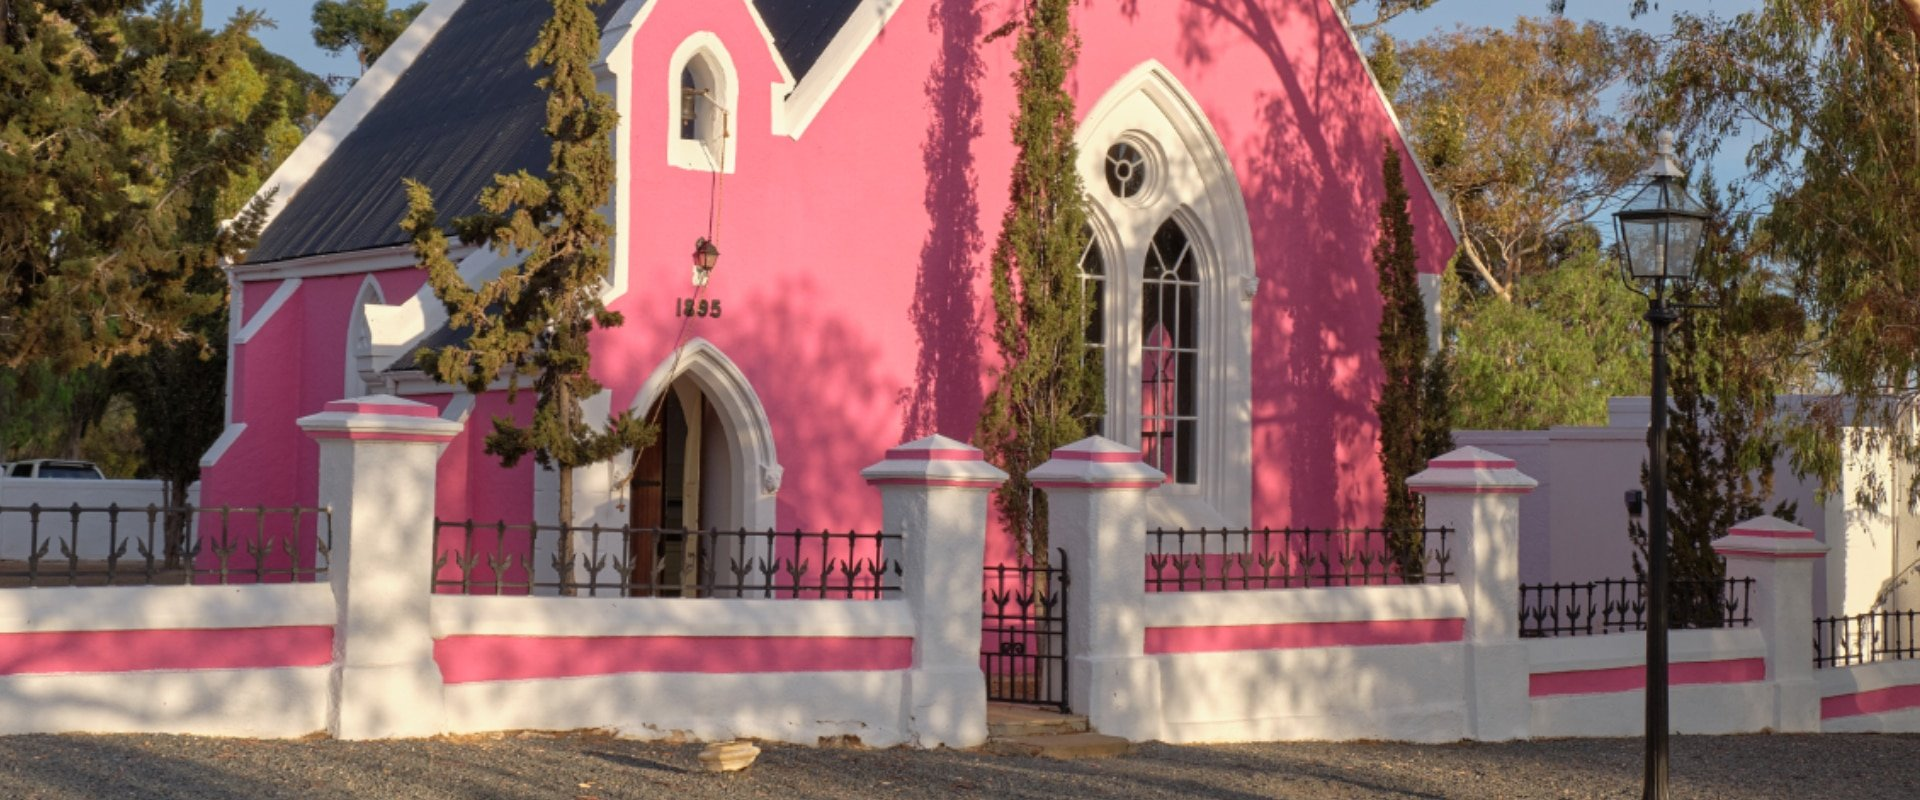 Visit the historic and authentically preserved Victorian village of Matjiesfontein